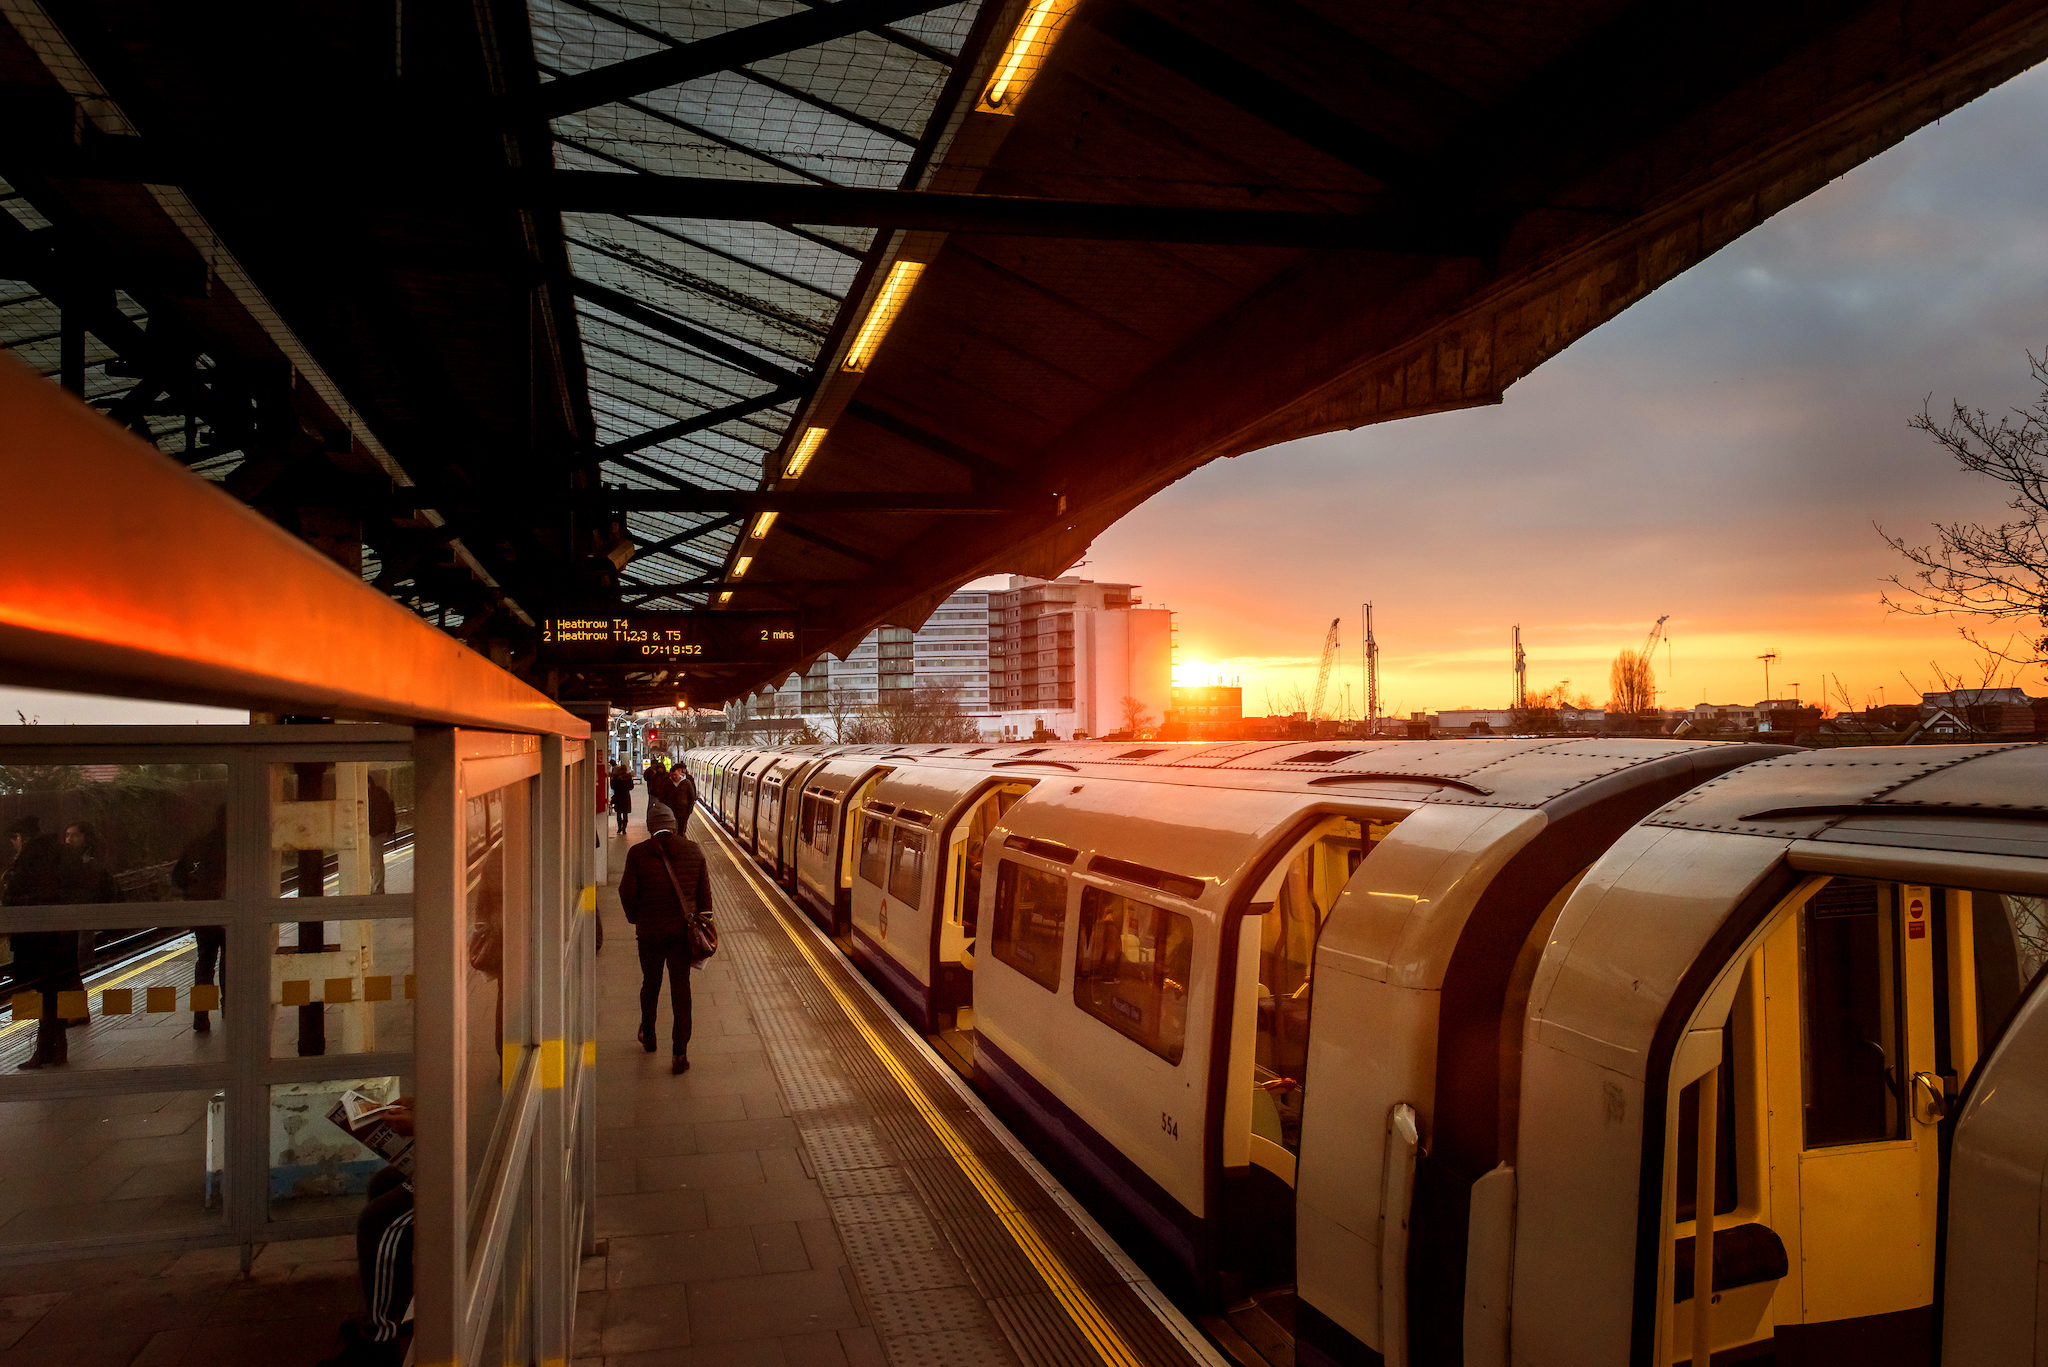 DO NOT REUSE - TfL Creative Solutions campaign, Feb 2018 - Sunrise Hounslow Central Station at the  on the 23/02/2018. Photo: David Tett